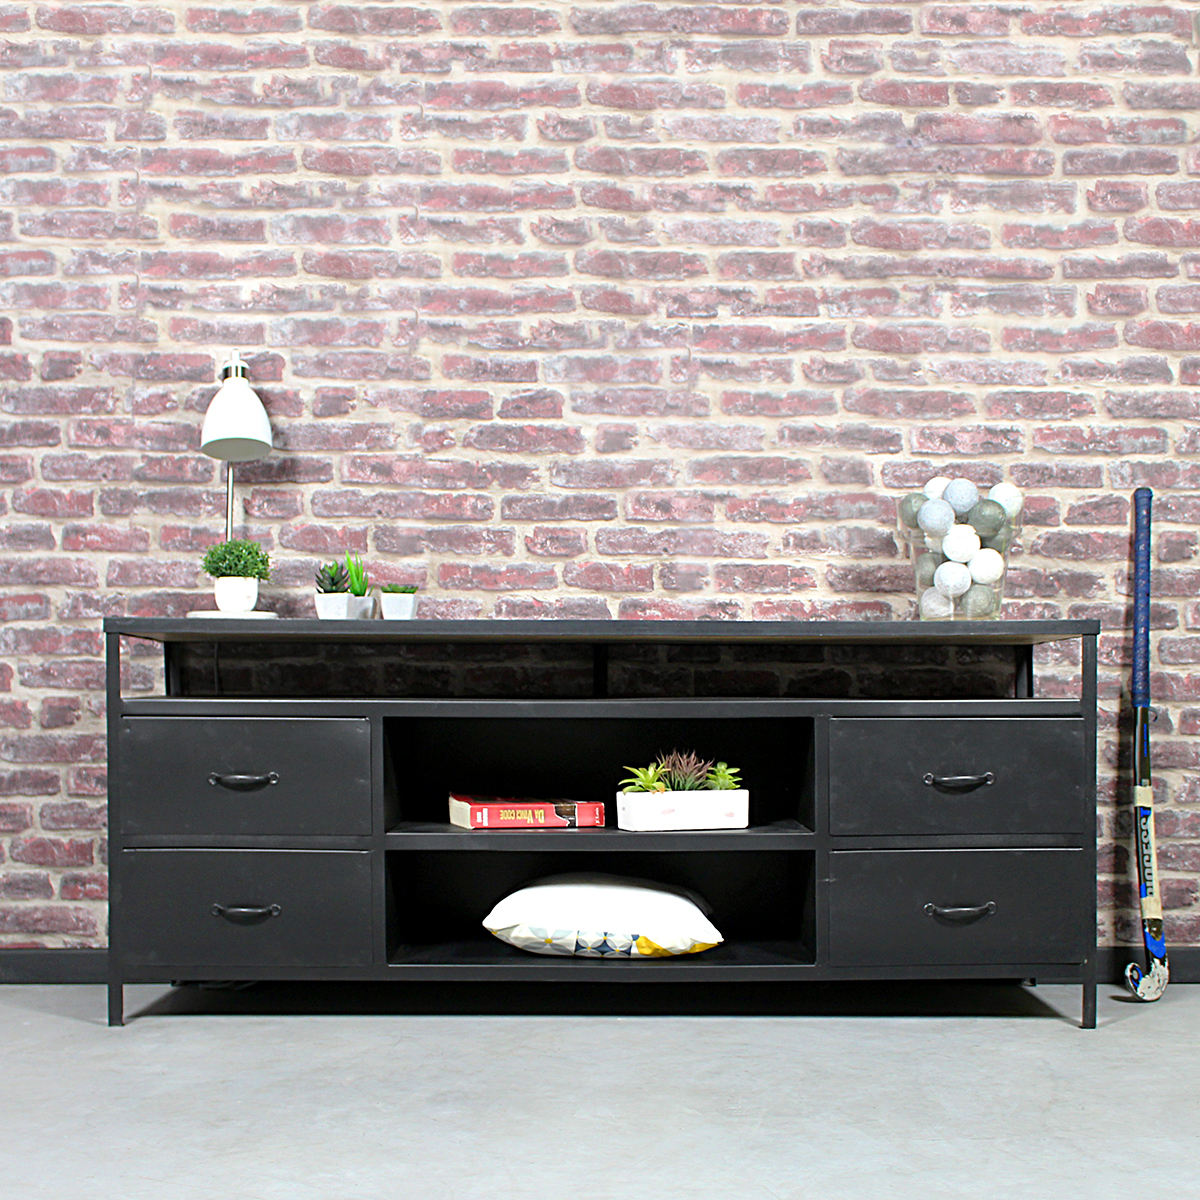 meuble tv industriel noir roulettes made in meubles. Black Bedroom Furniture Sets. Home Design Ideas